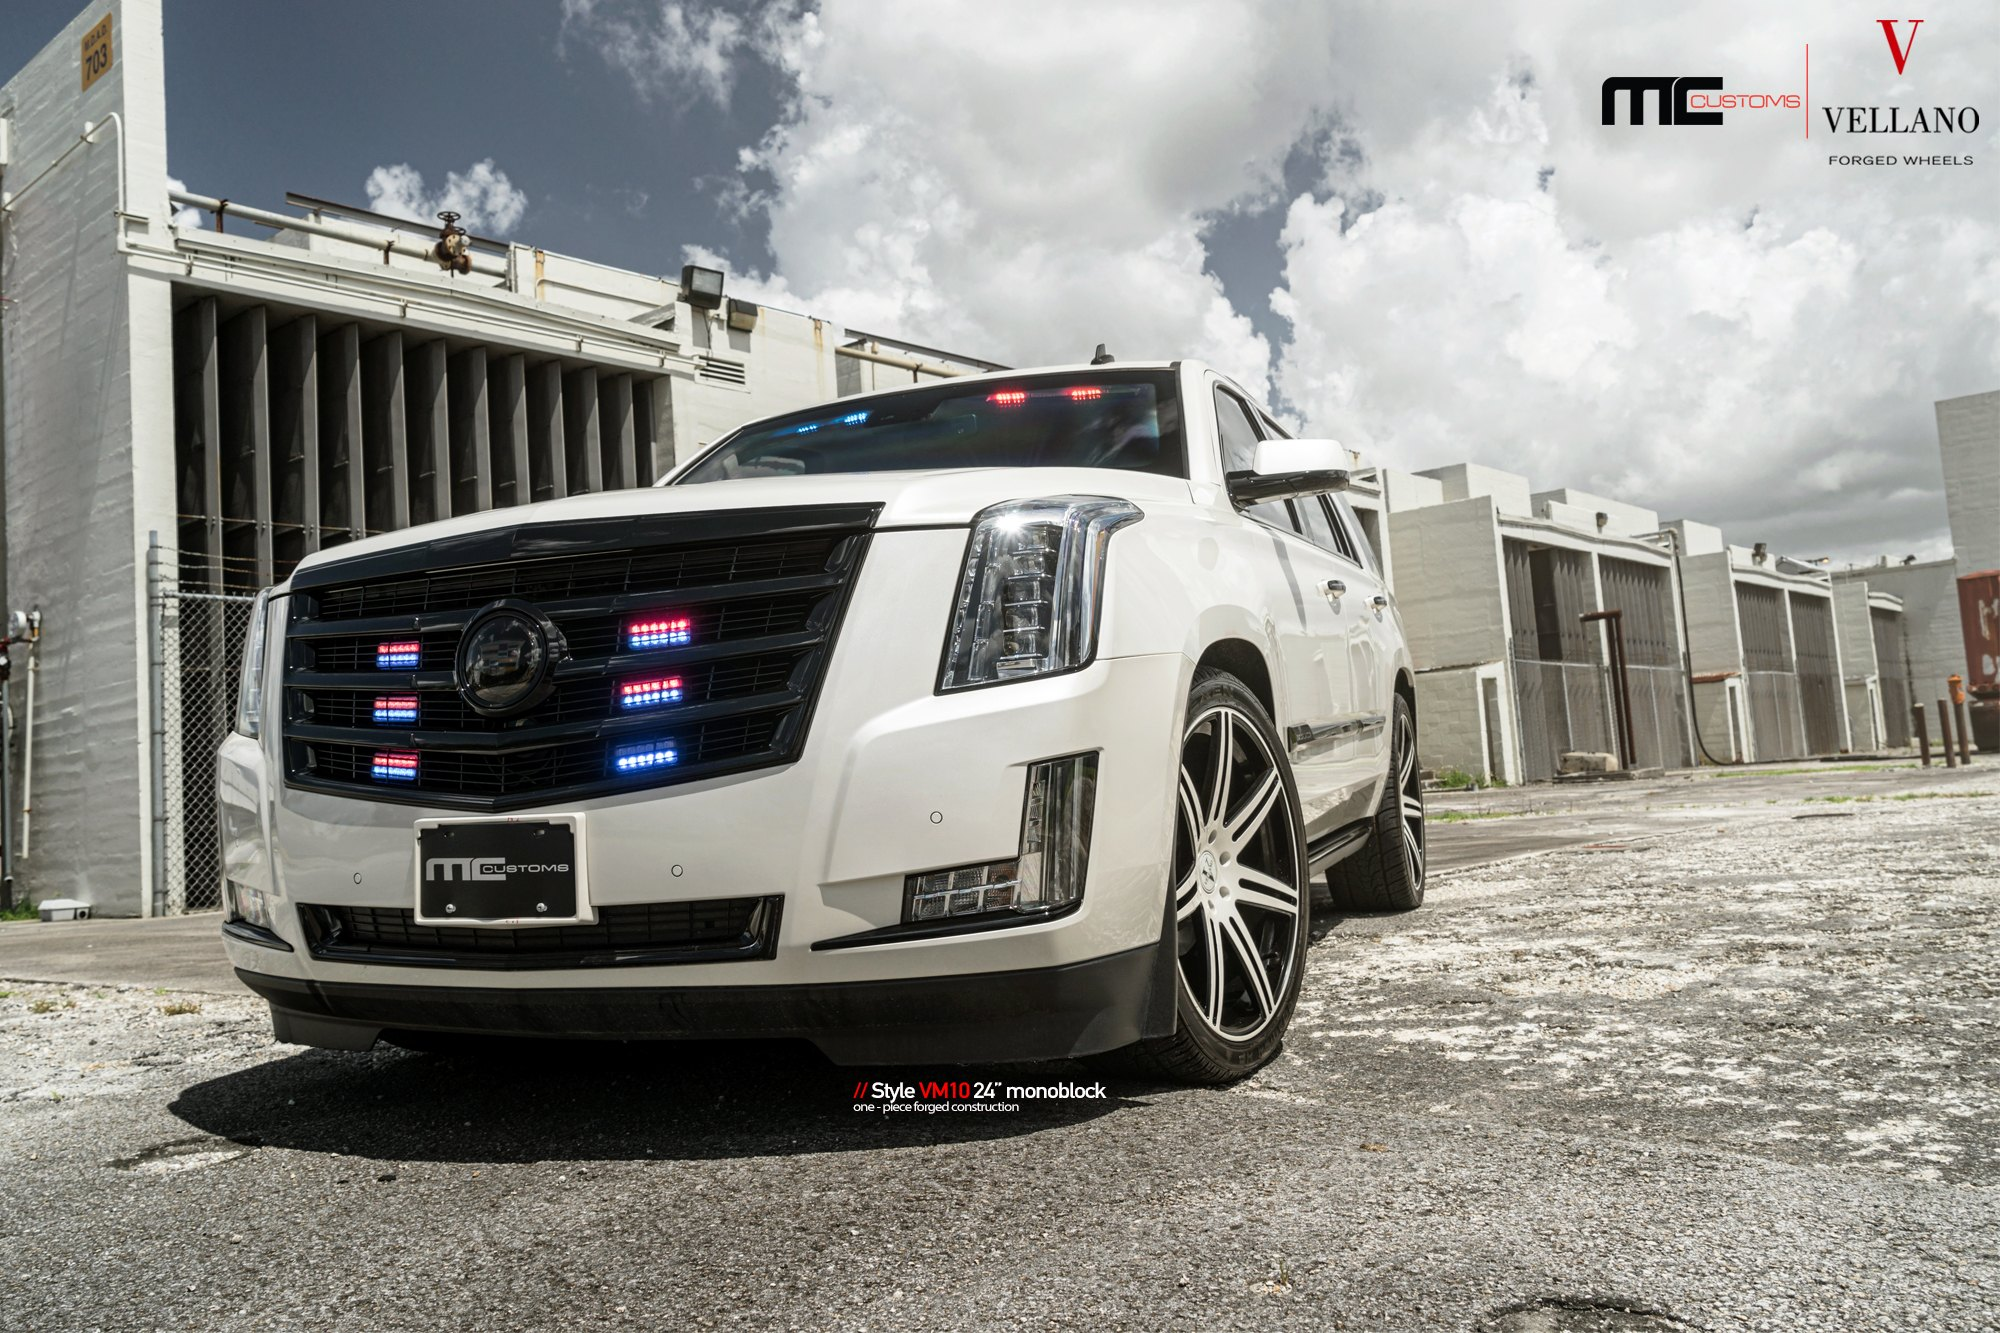 Vip Face Gloss Black Custom Grille On White Cadillac Escalade